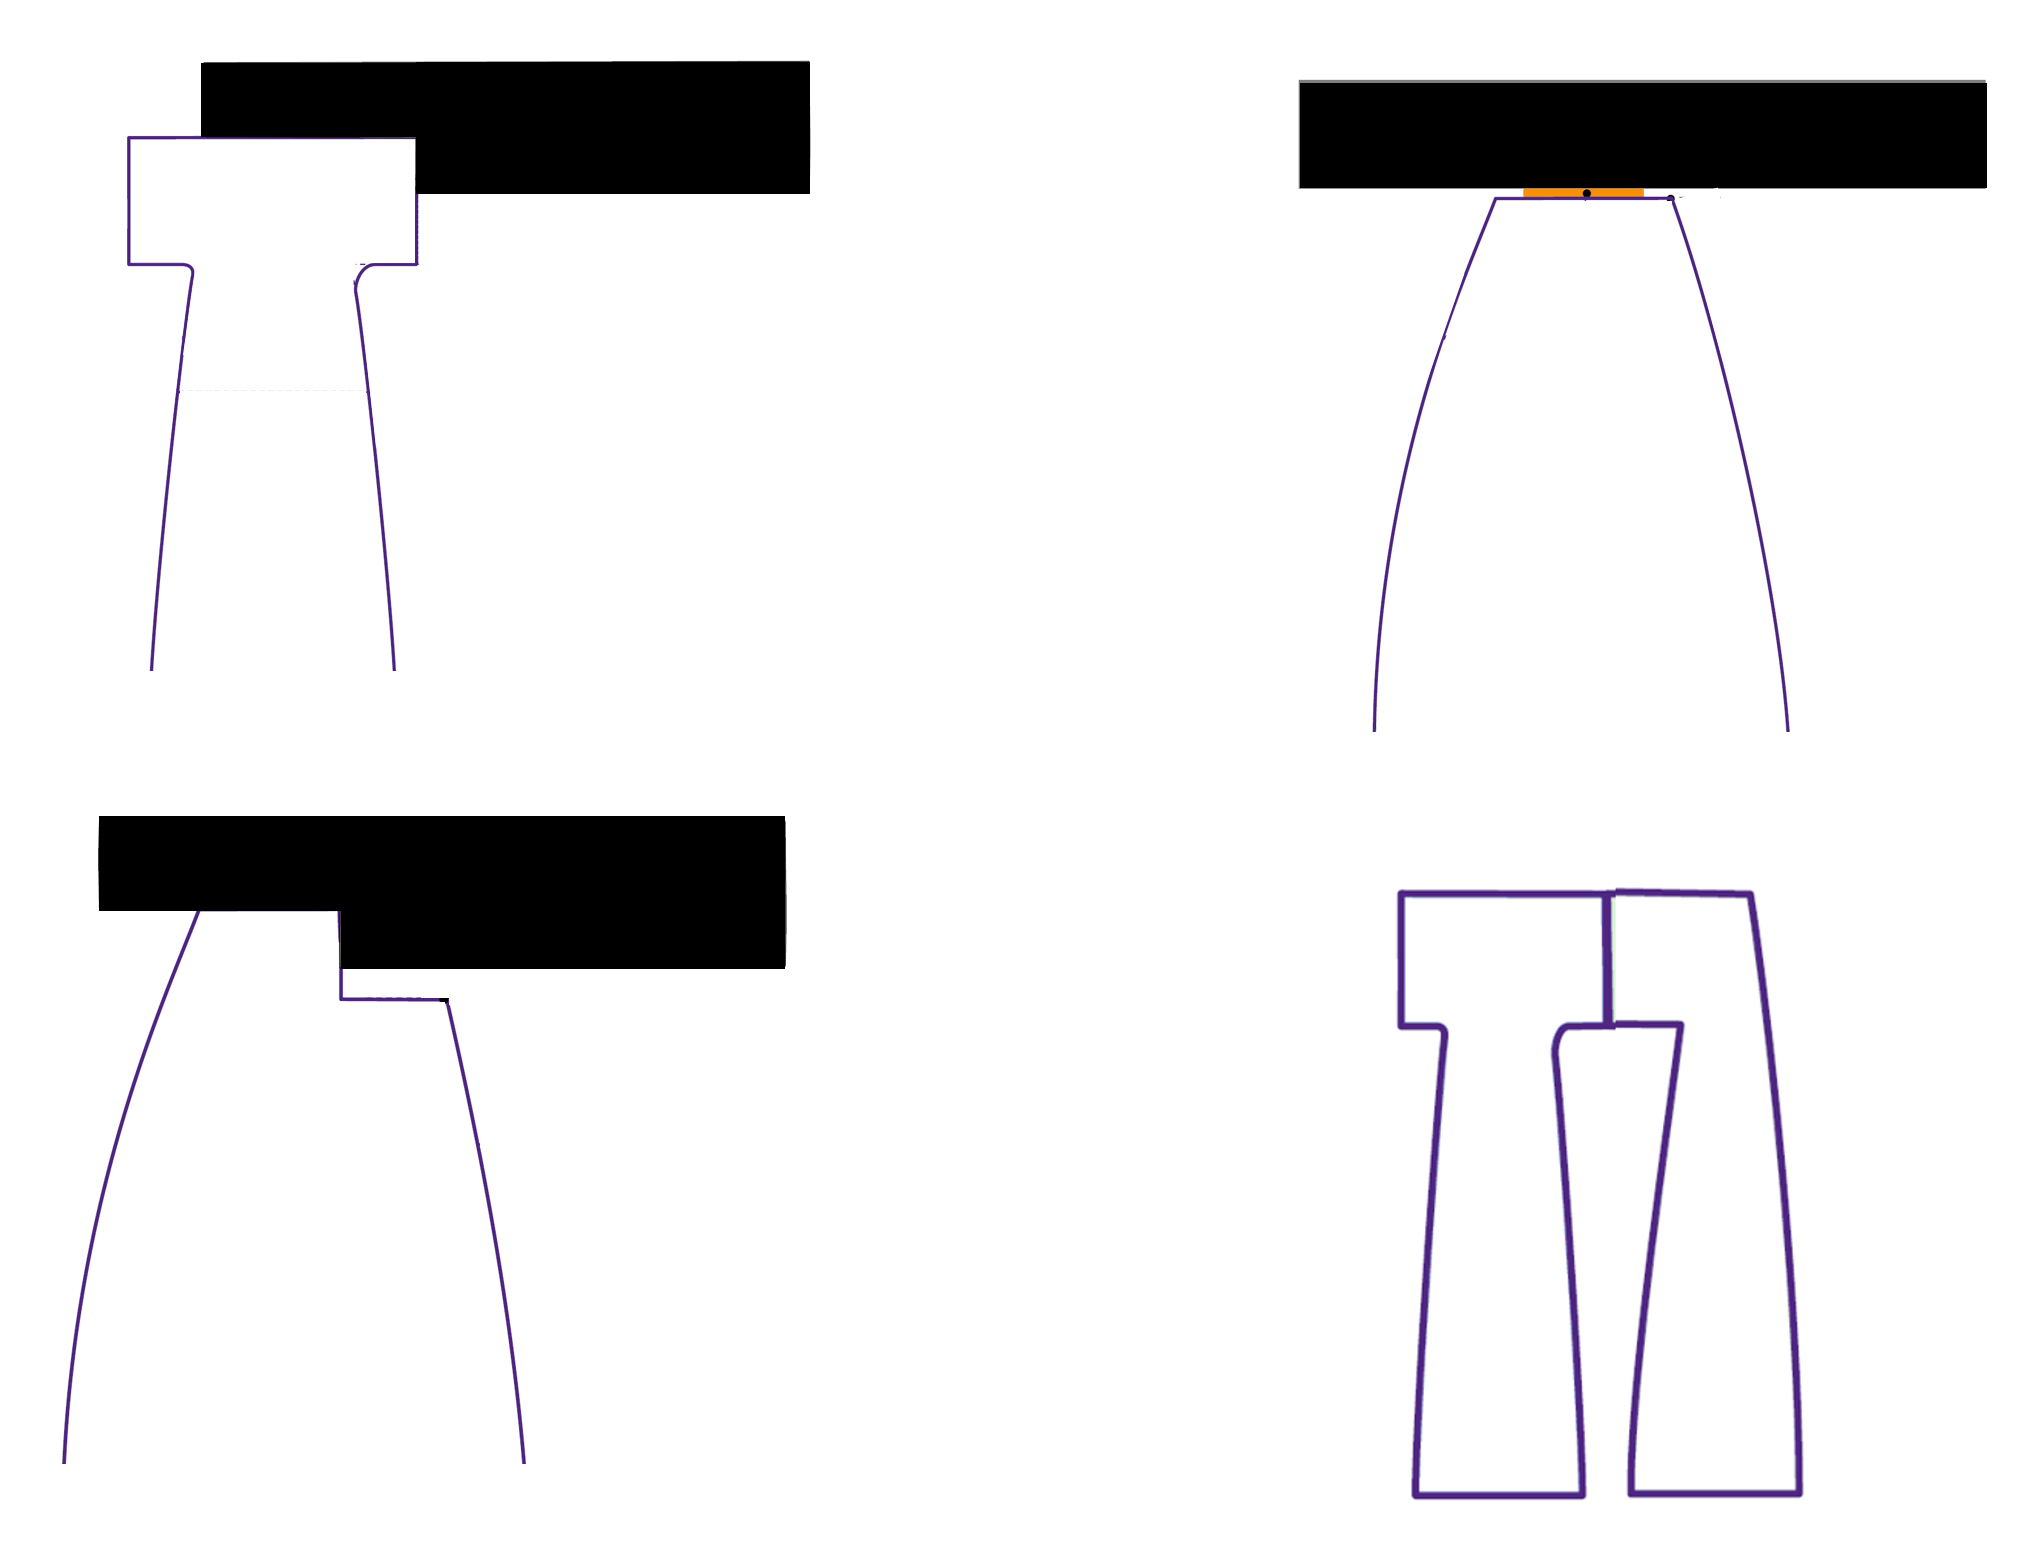 athermal seat mounting types modeled